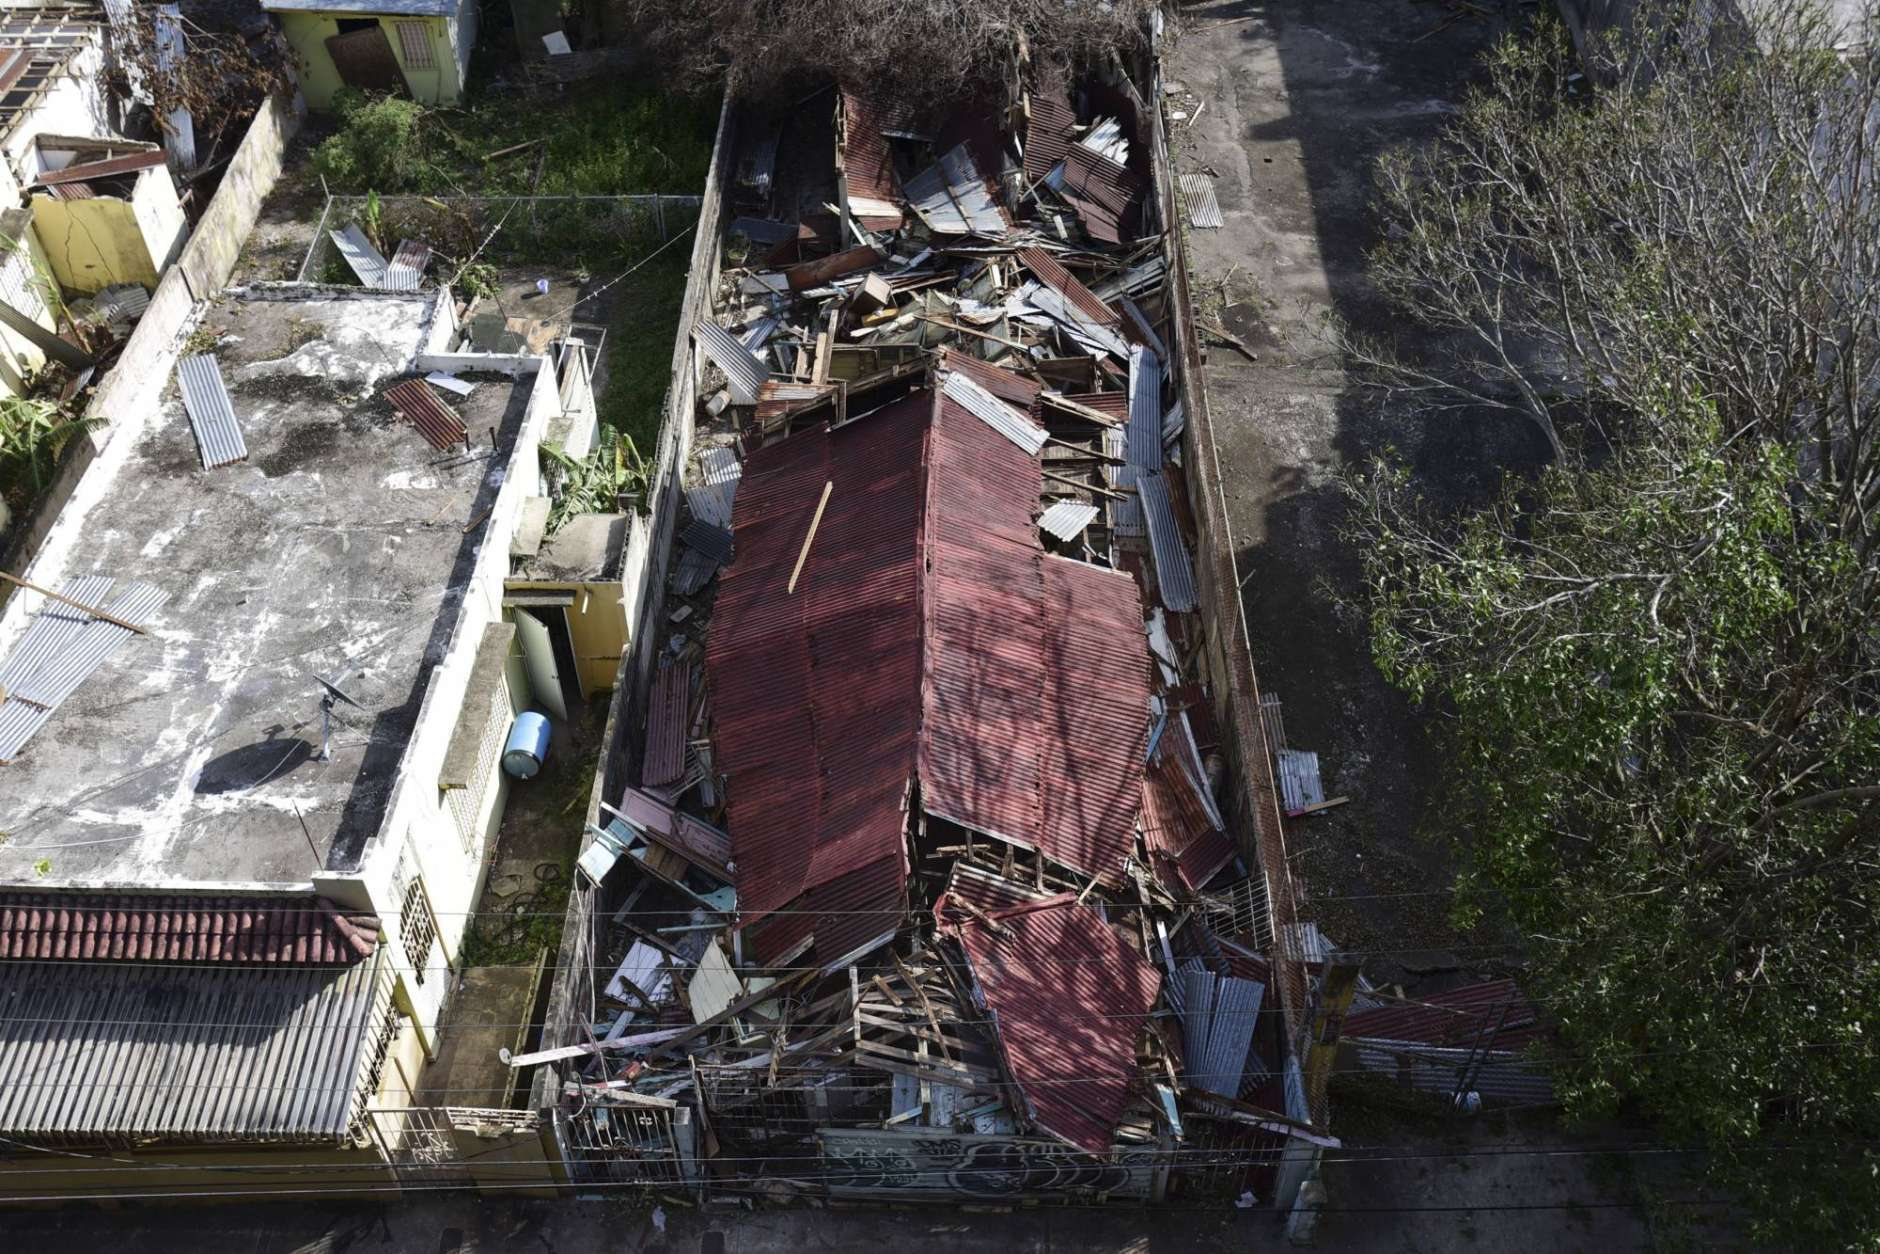 A destroyed building in the of El Gandul Community in Santurce is seen after Hurricane Maria, in San Juan, Puerto Rico, Monday, Sept. 25, 2017. The island territory of more than 3 million U.S. citizens is reeling in the devastating wake of Hurricane Maria. (AP Photo/Carlos Giusti)